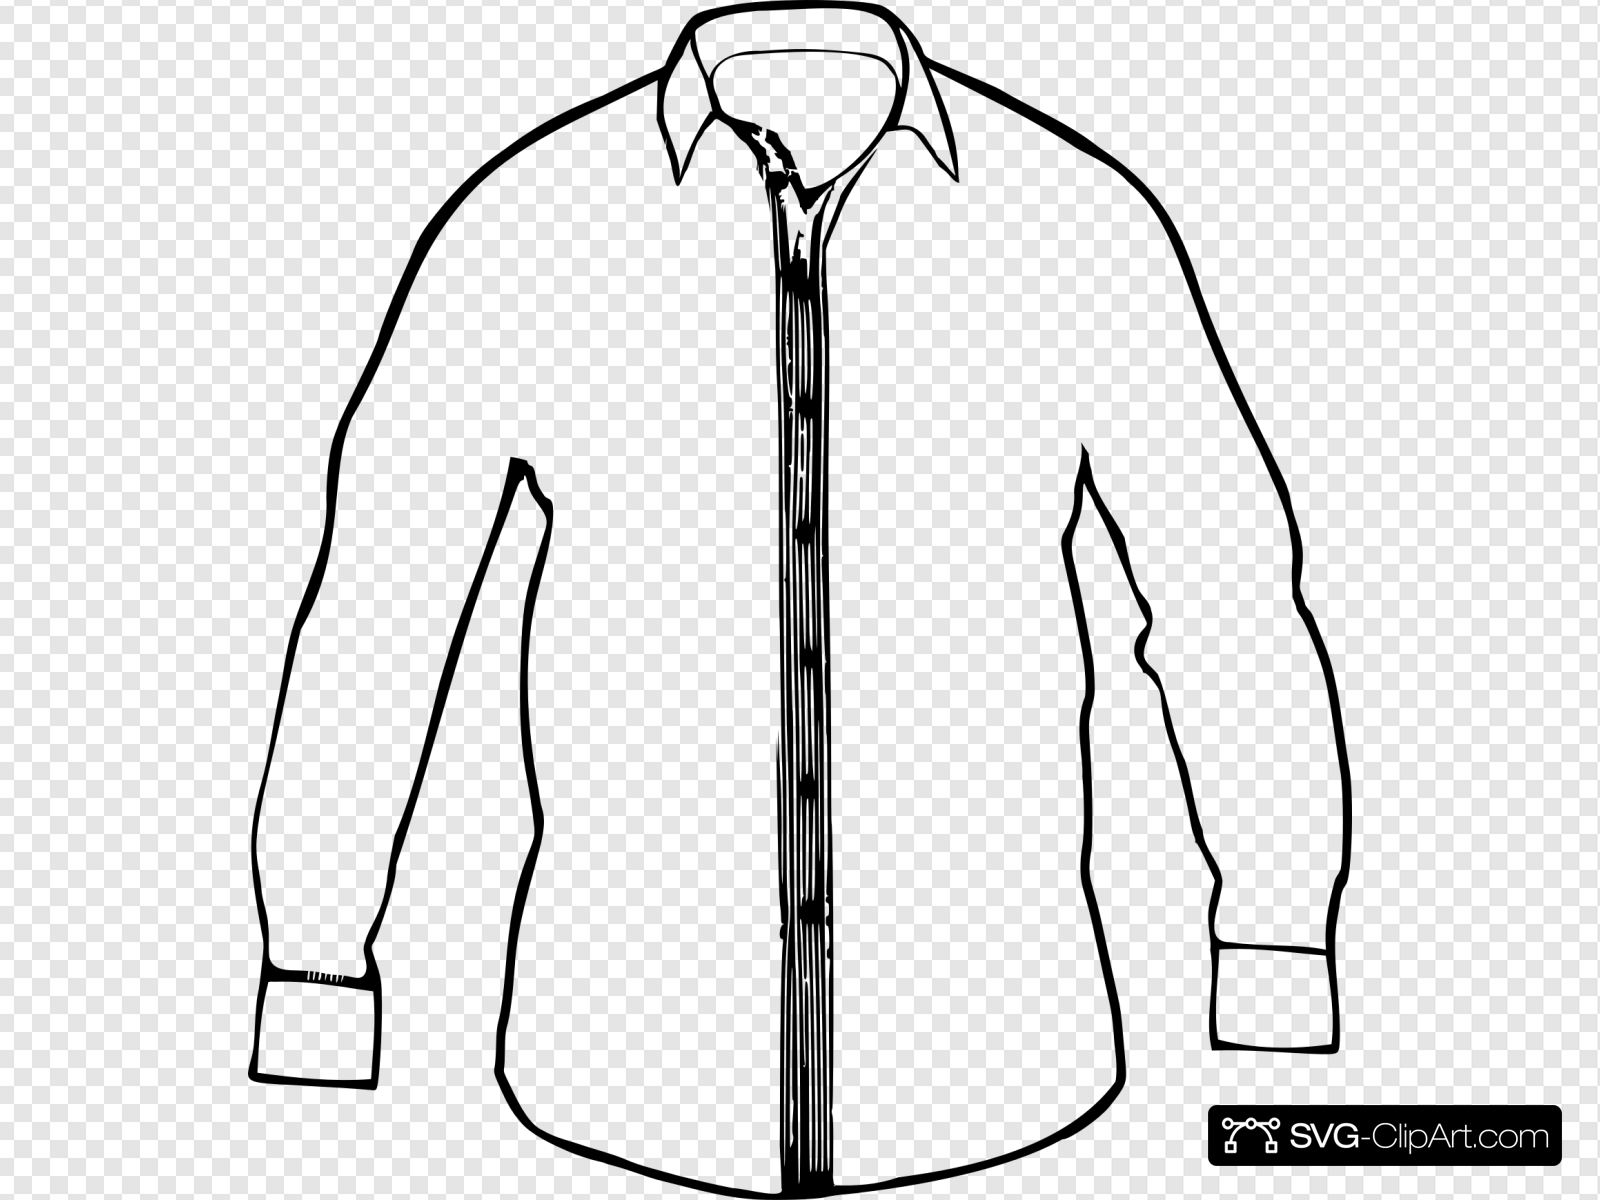 White Collared Shirt Clip art, Icon and SVG.